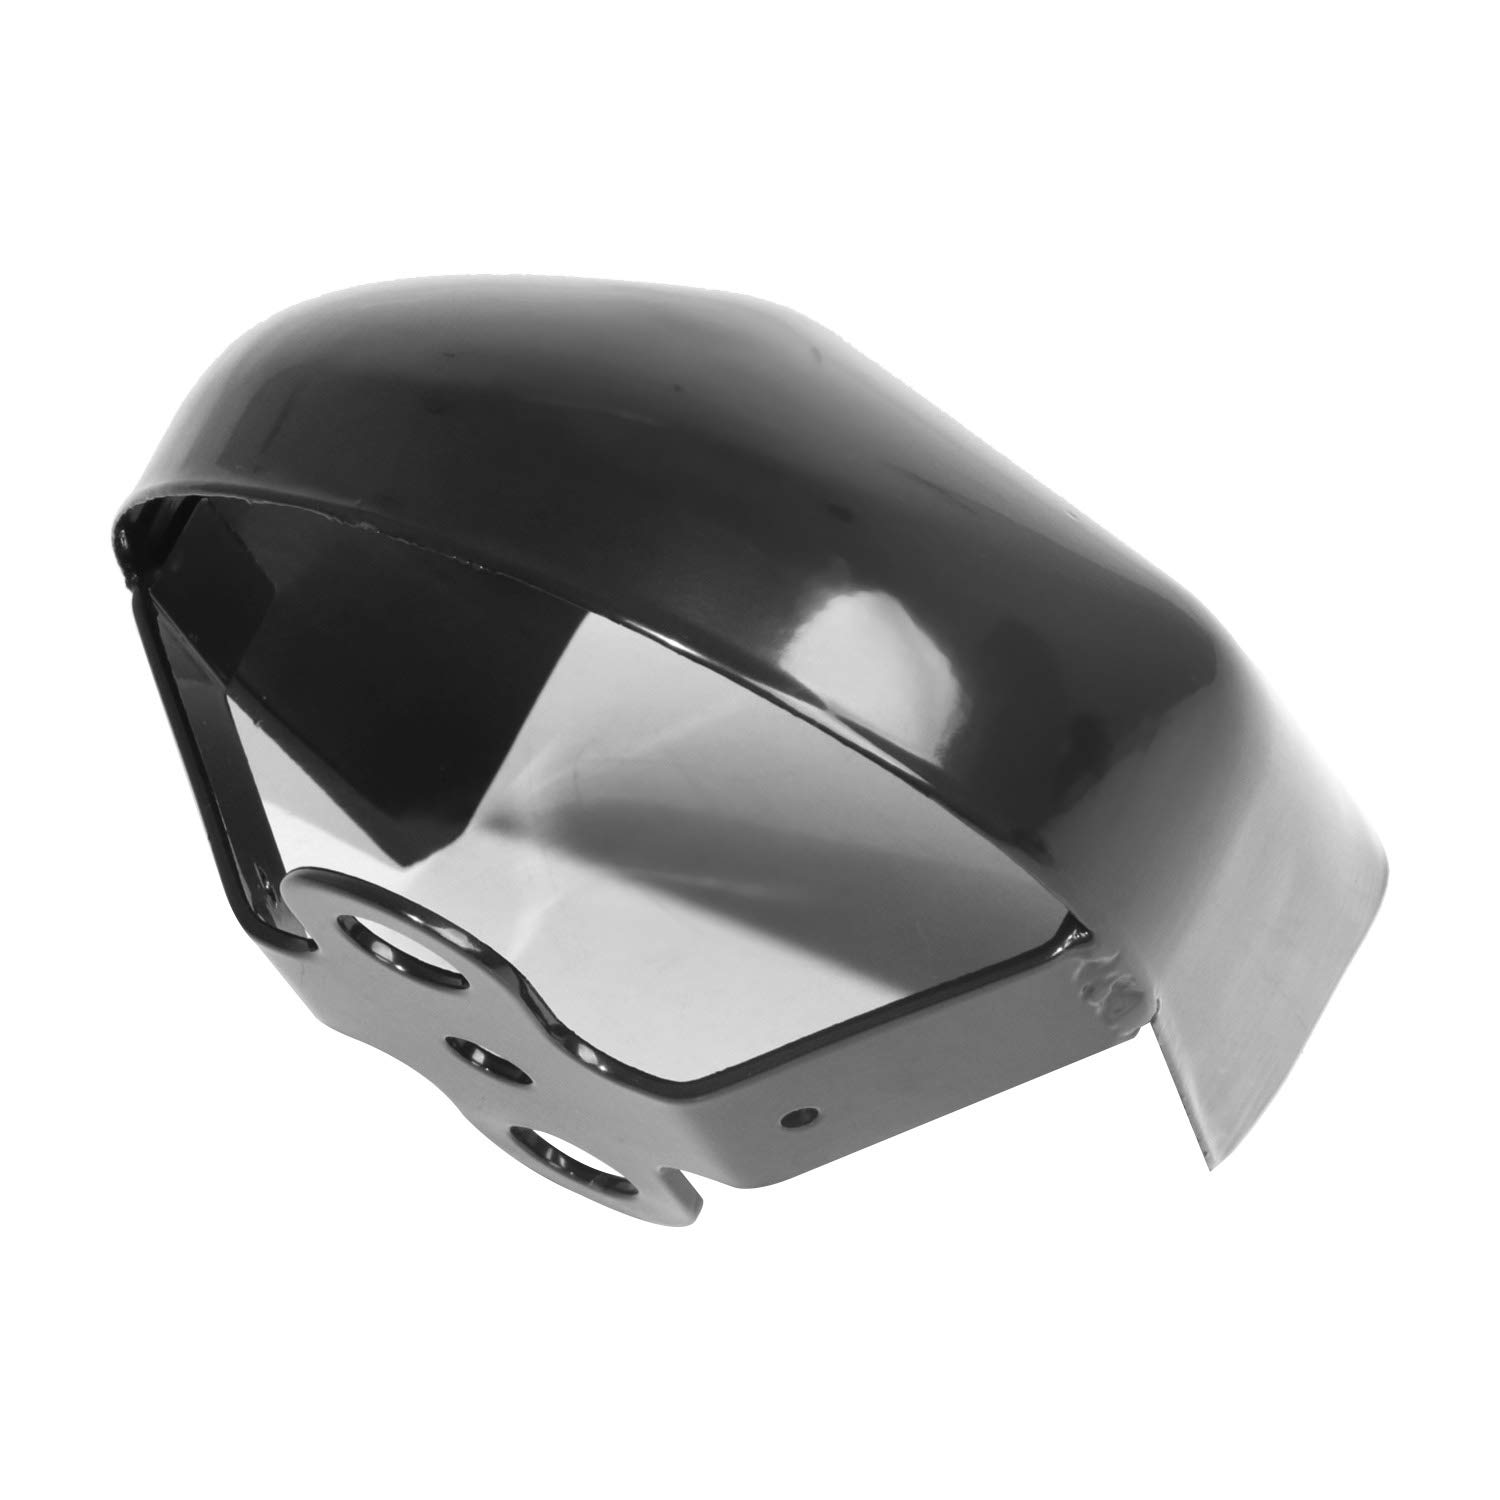 Motorcycle Gloss Black Steel Horn Cover for Harley Touring Models 1993-2017